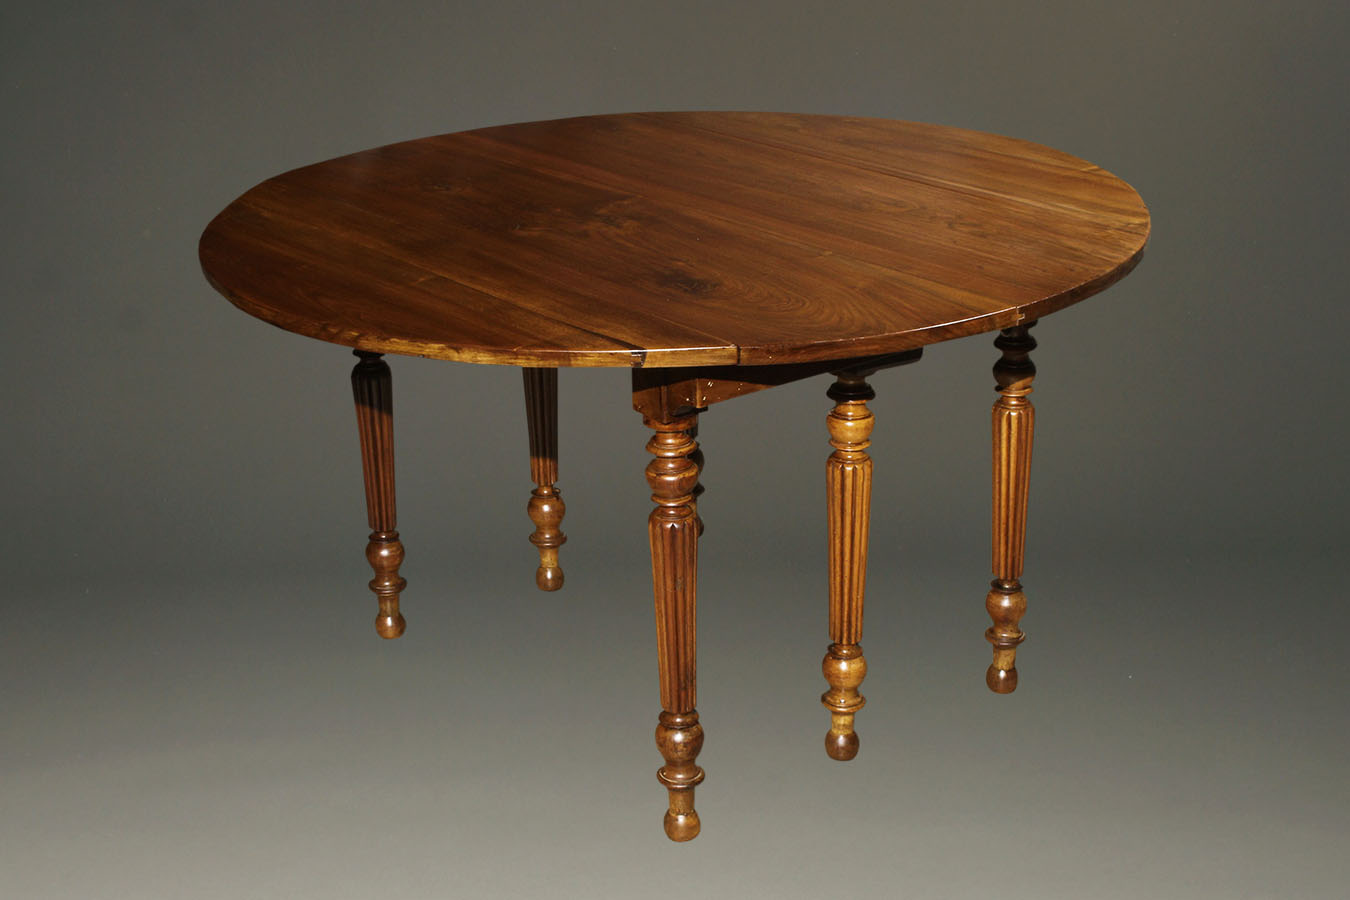 19th century French walnut kitchen table with drop leaves and fluted legs.